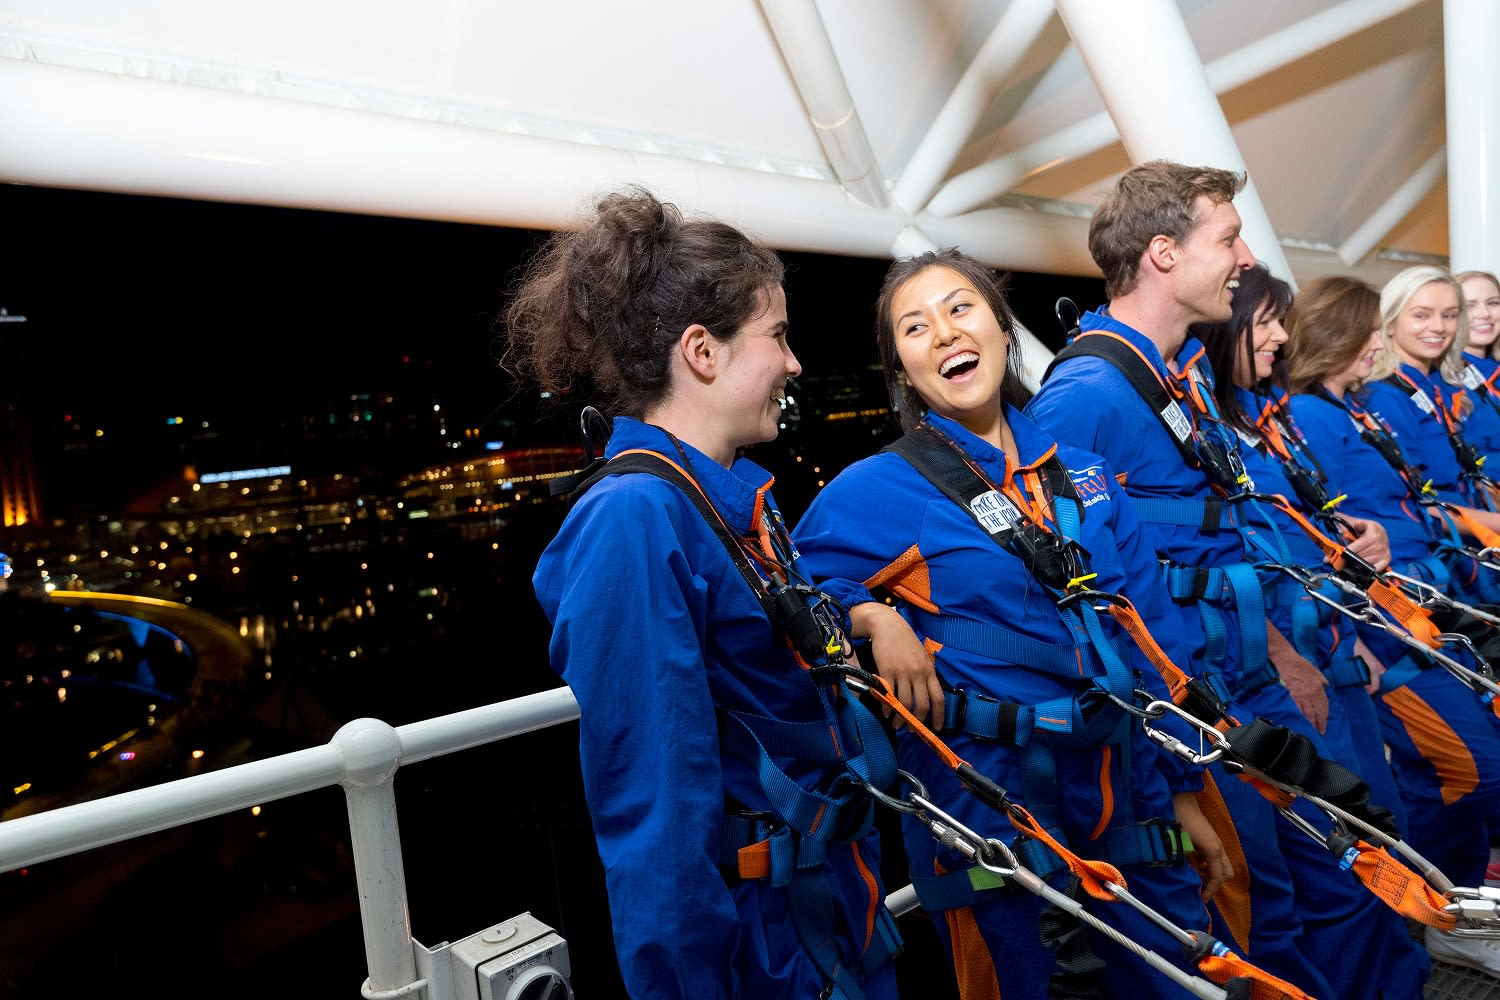 Adelaide Oval Roof Climb - Night